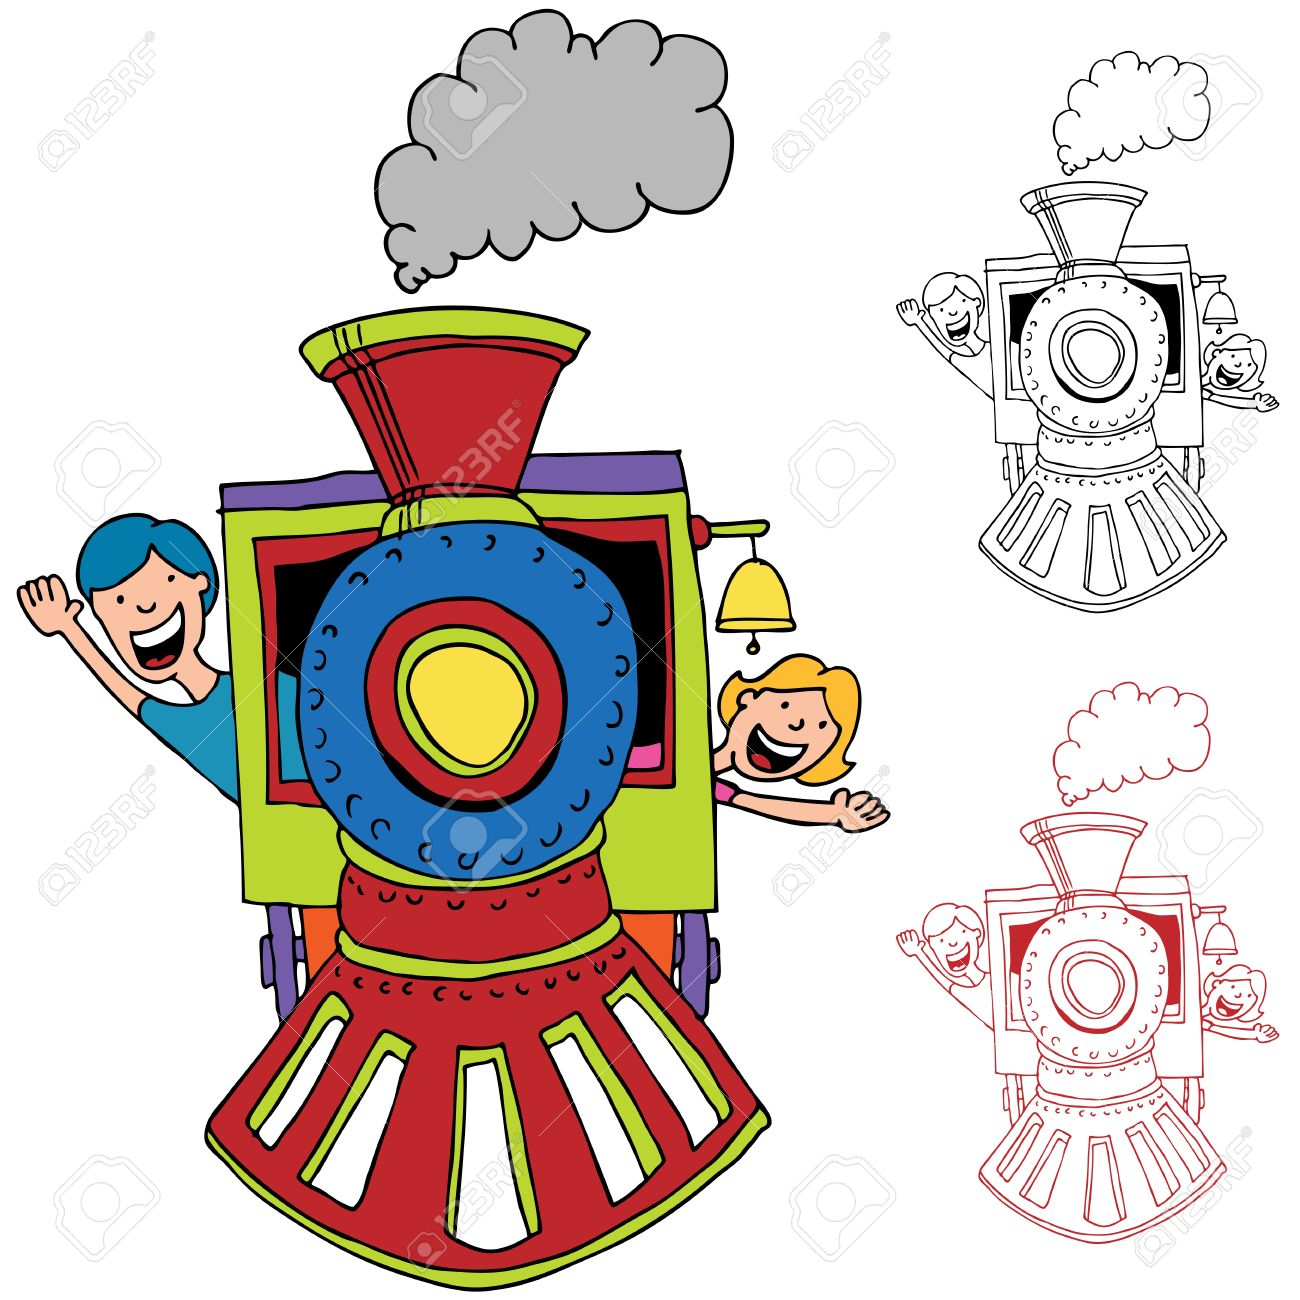 Train ride clipart 20 free Cliparts | Download images on ...